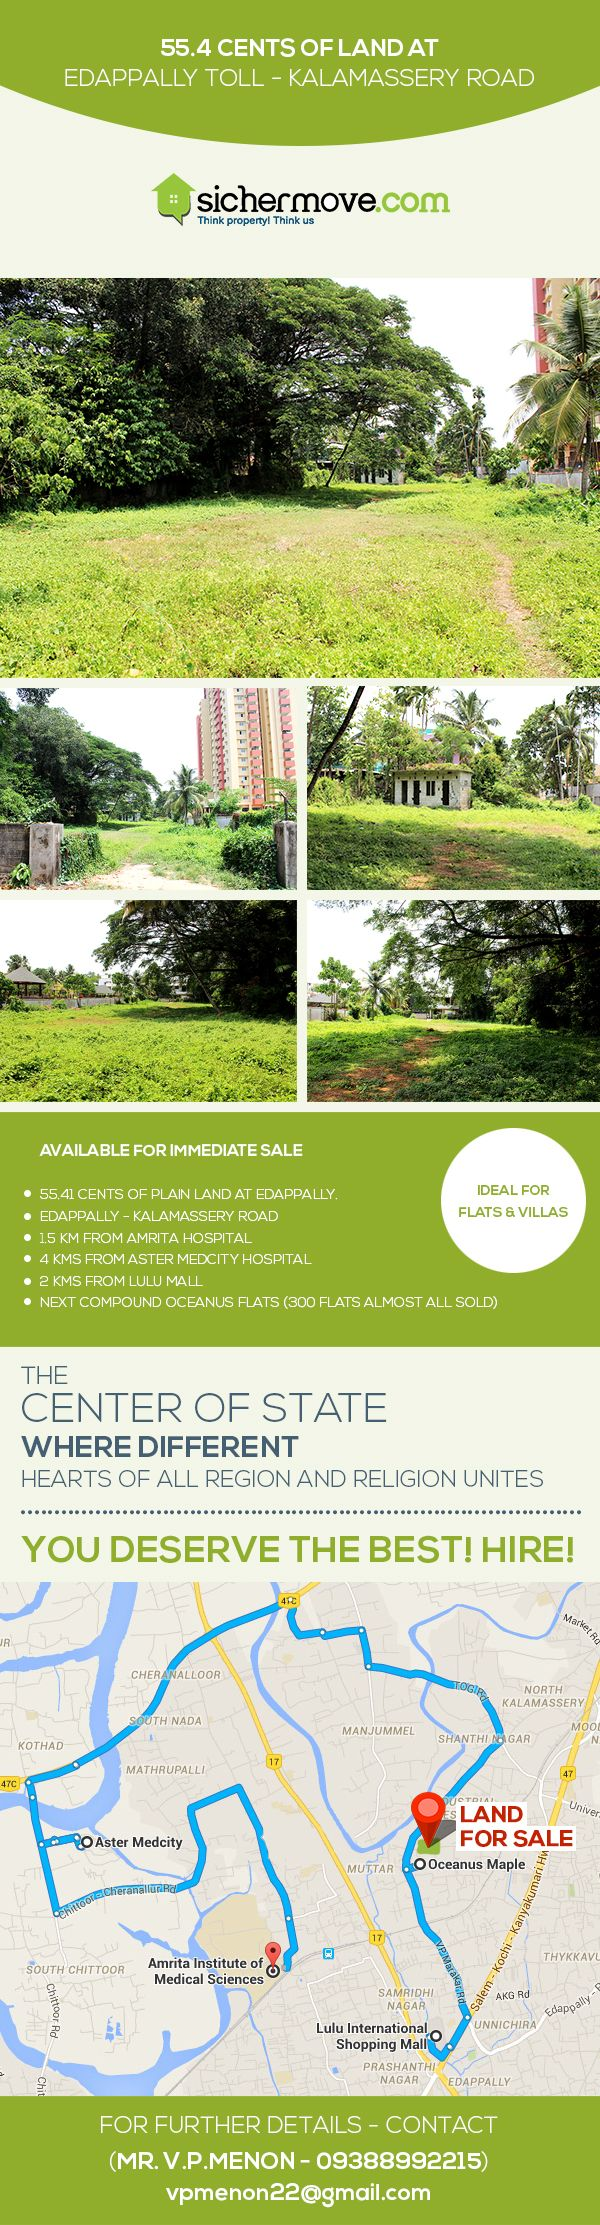 """DON'T BUY FROM ME UNLESS YOU ARE READY TO SUCCESS"" Commercial Land for Sale  in Edappally,Ernakulam@ negotiable price.For more information please click on:-http://bit.ly/1ThOQU4 Buy/sell/rent Properties???....Log on to www.sichermove.com or call 9061681333/222/444 Think Property !!! Think sichermove.com !!!!"